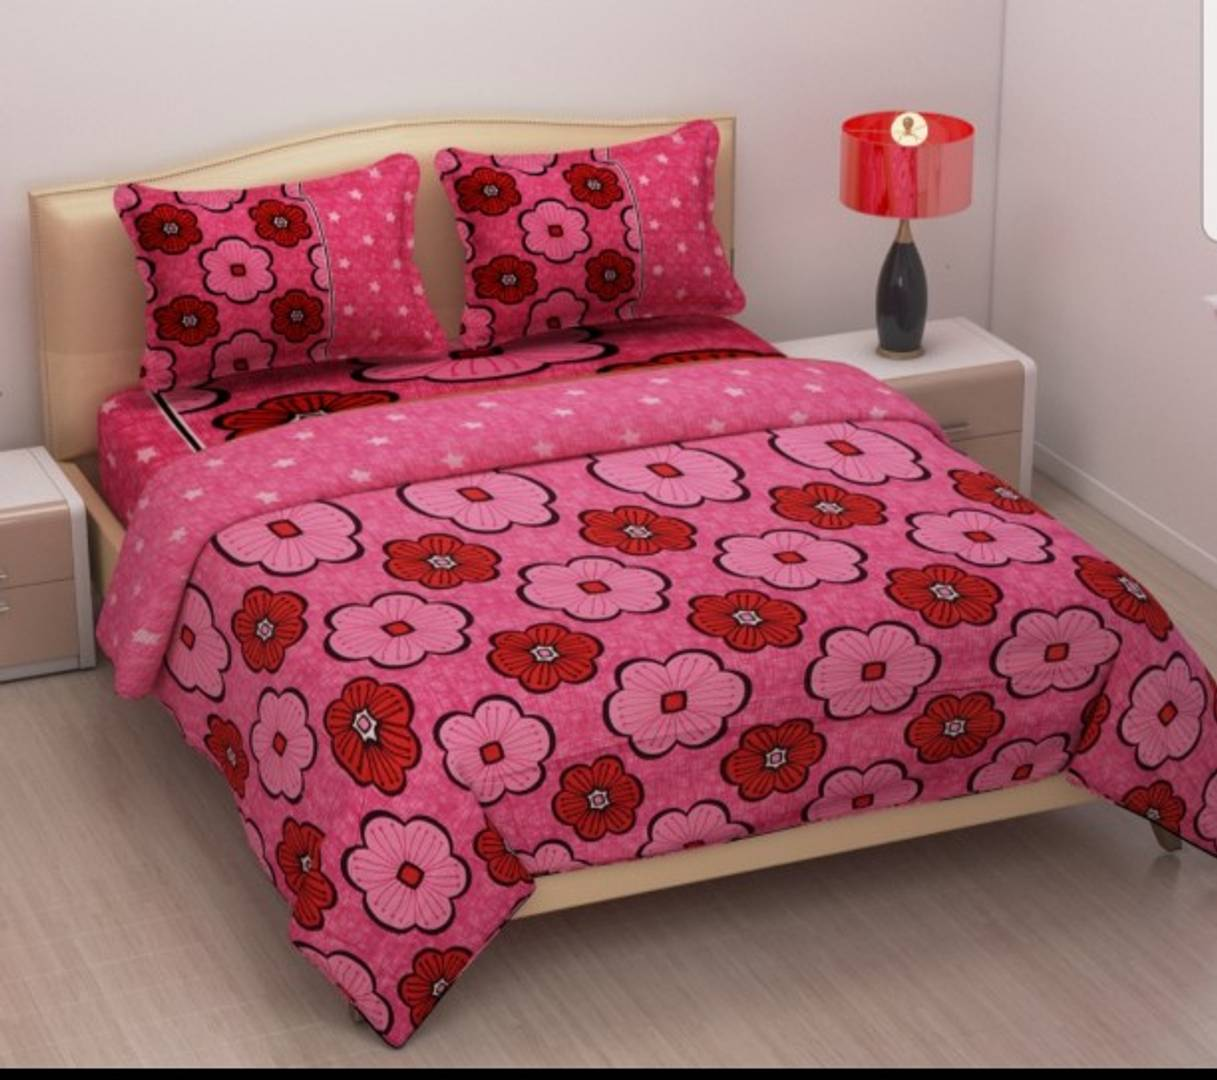 Polycotton Printed Double Bedsheets